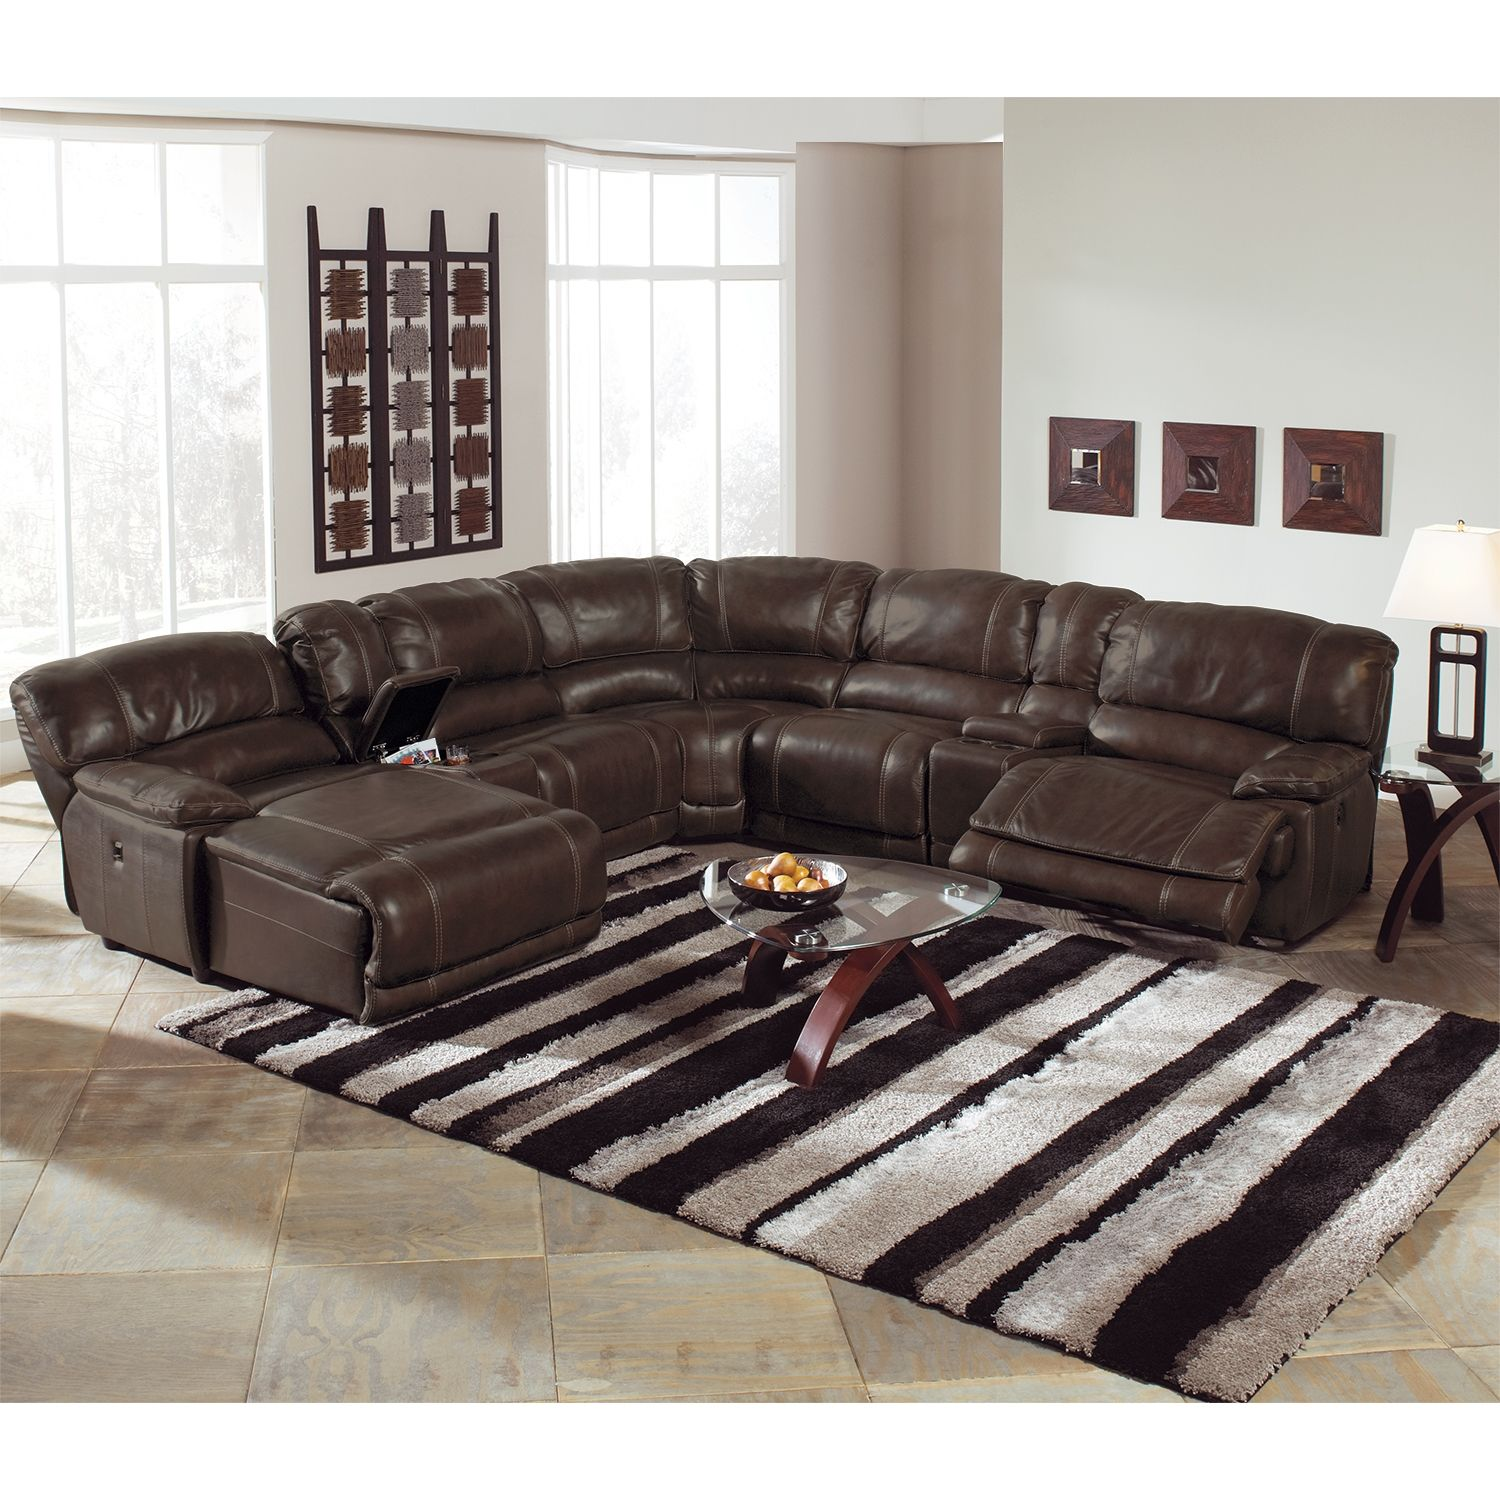 Best St Malo 6 Piece Power Reclining Sectional With Left 400 x 300